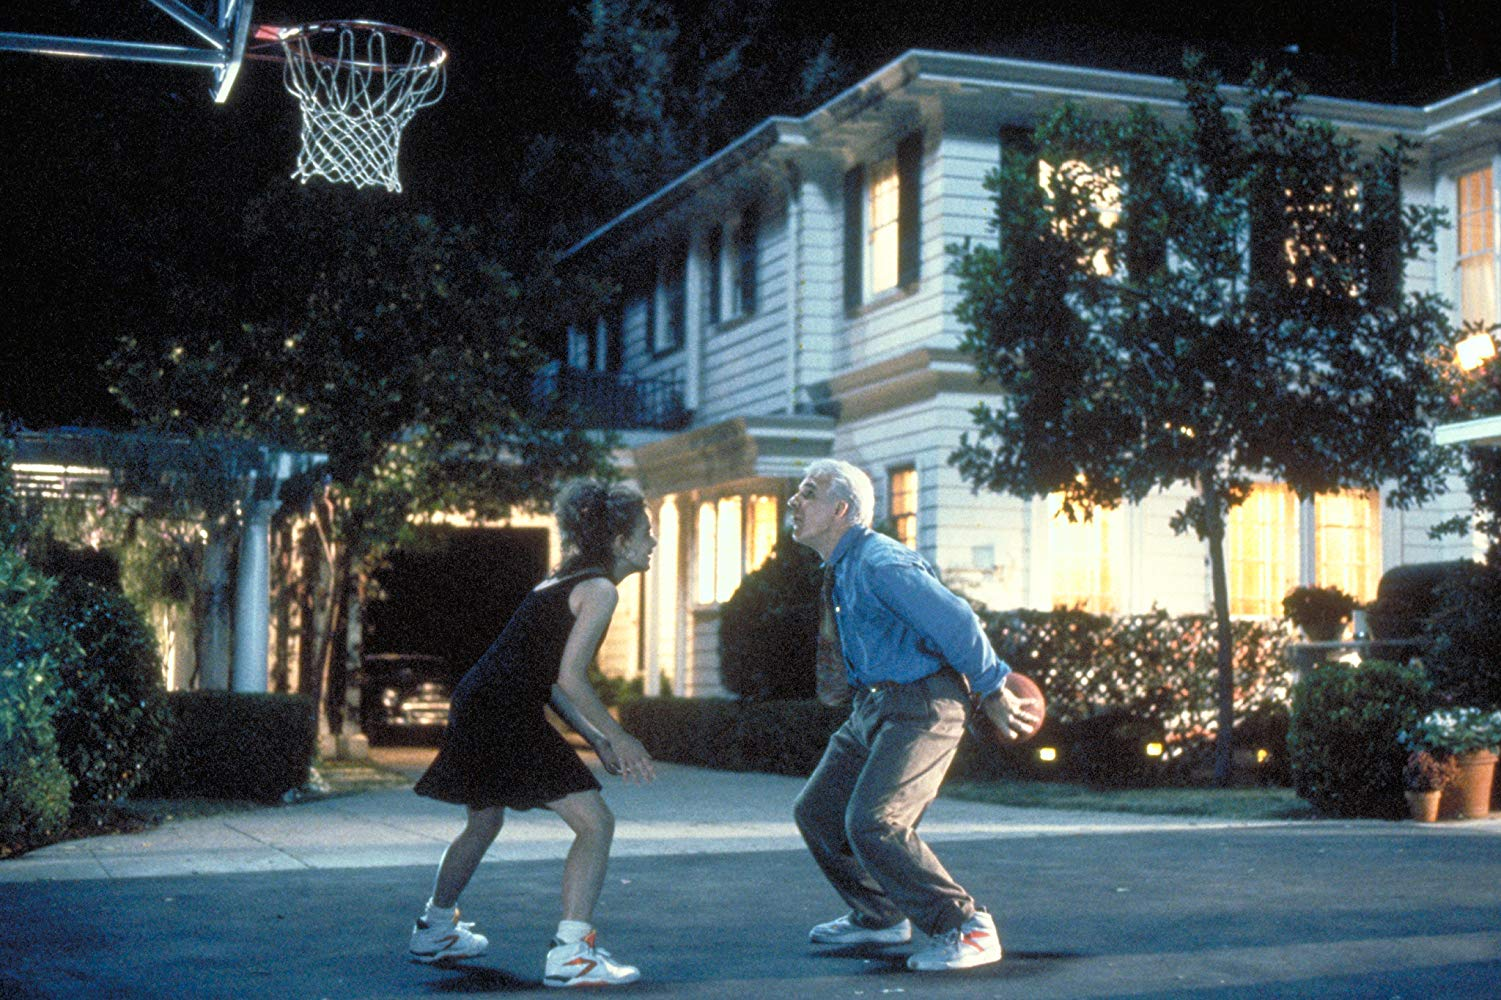 father of the bride basketball scene